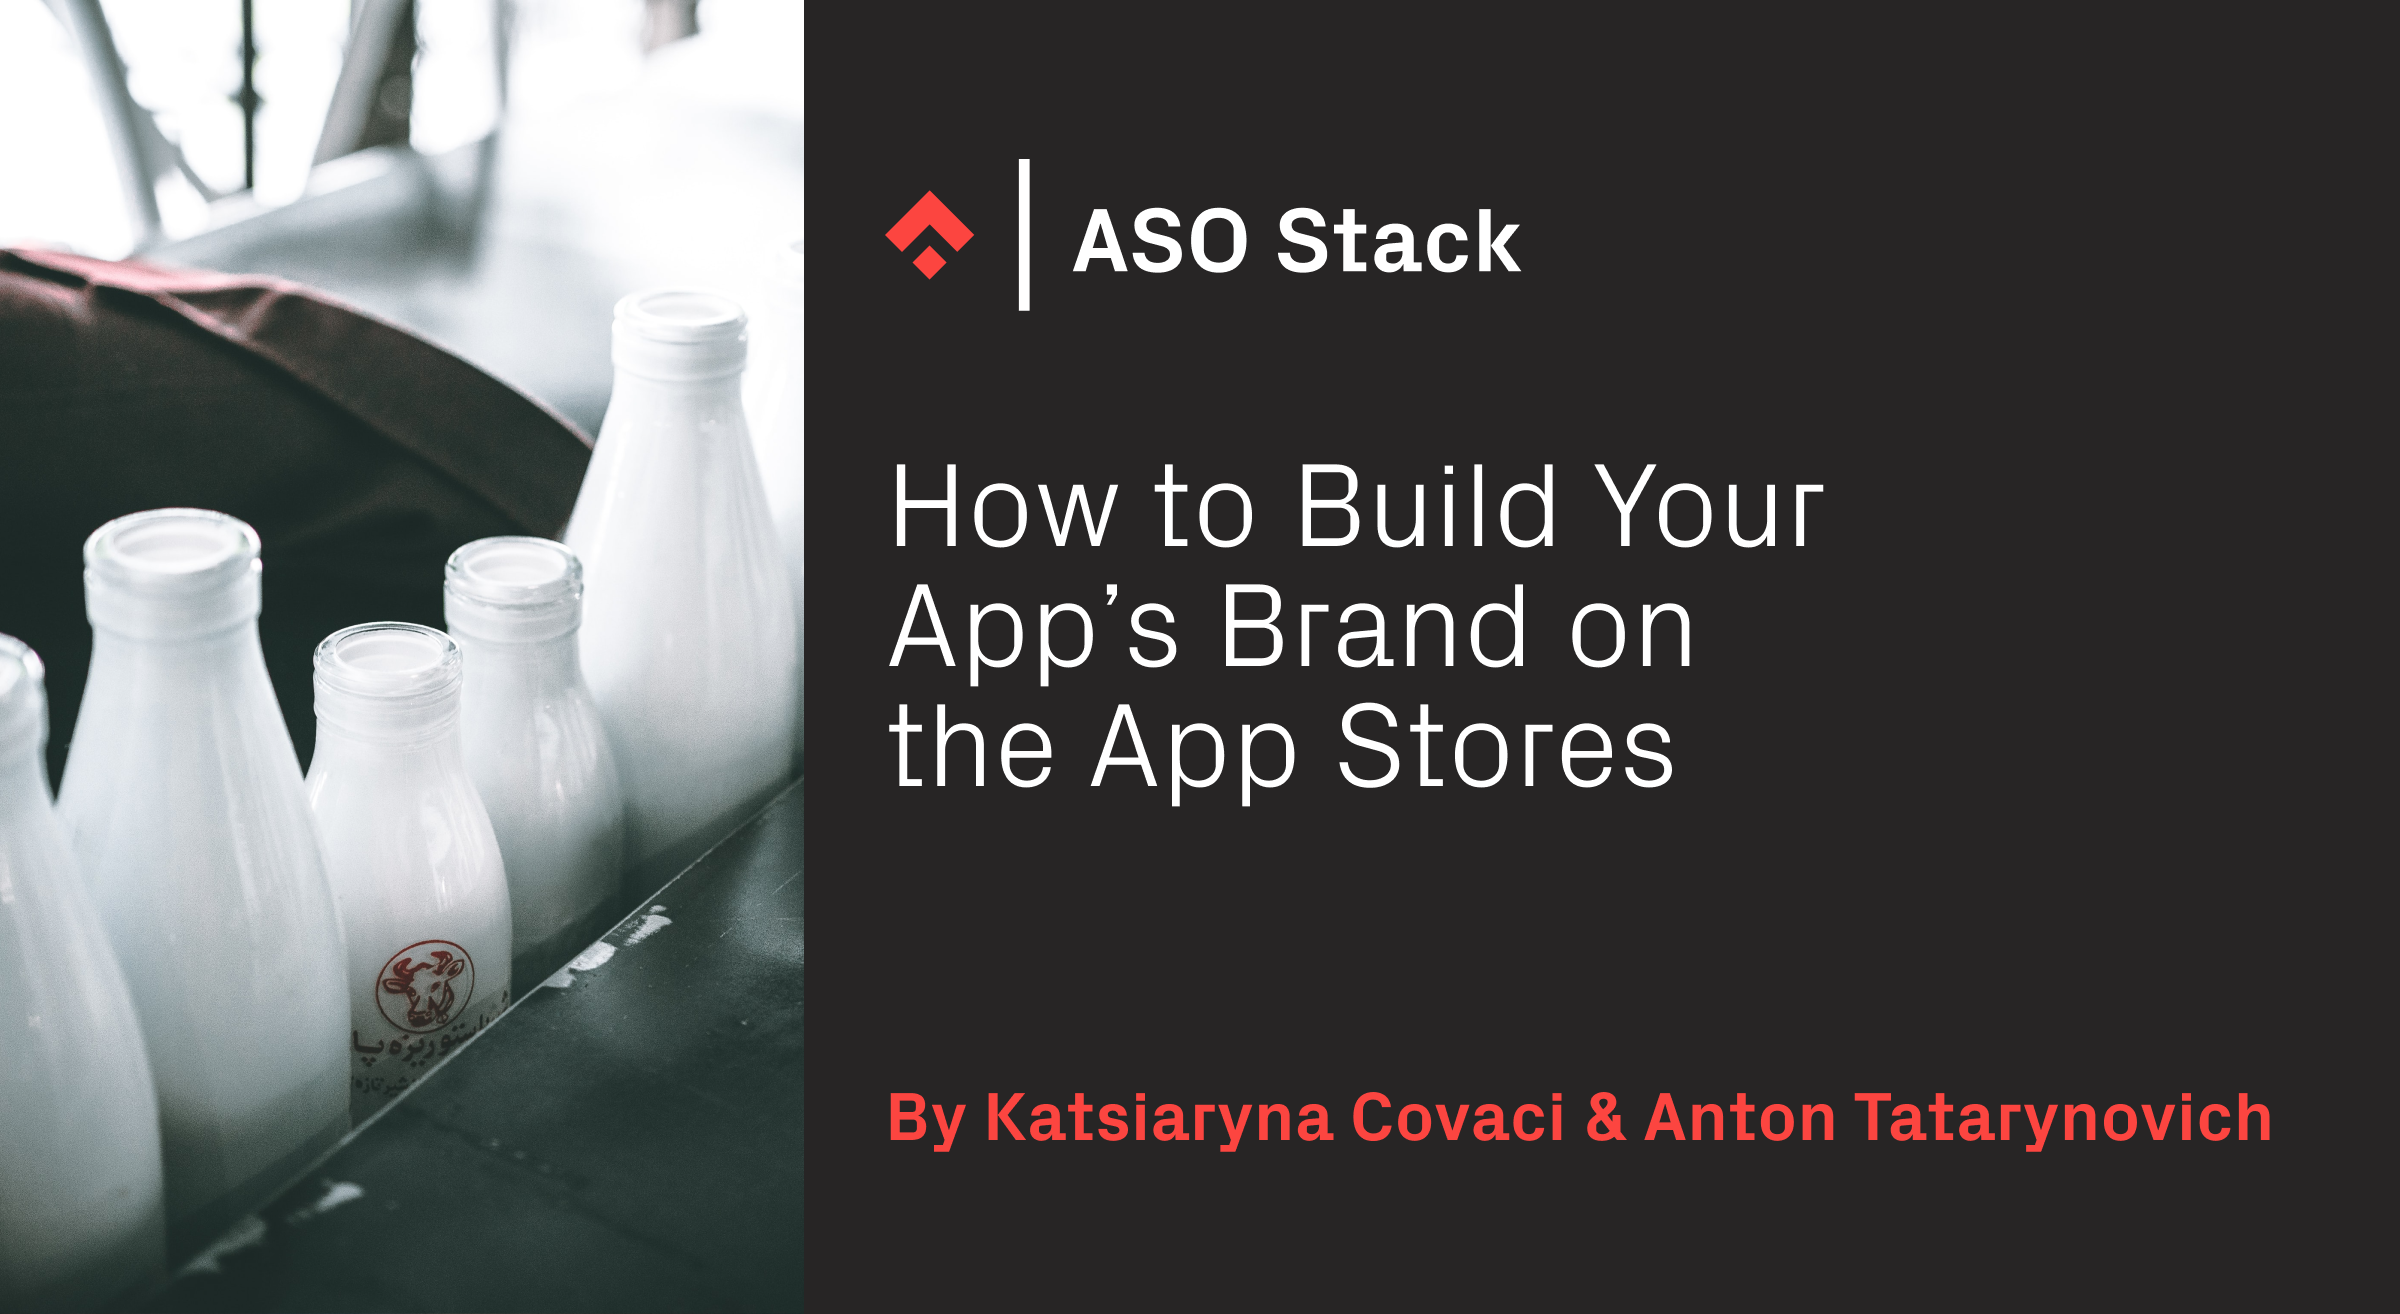 How to Build Your Apps Brand on the App Stores